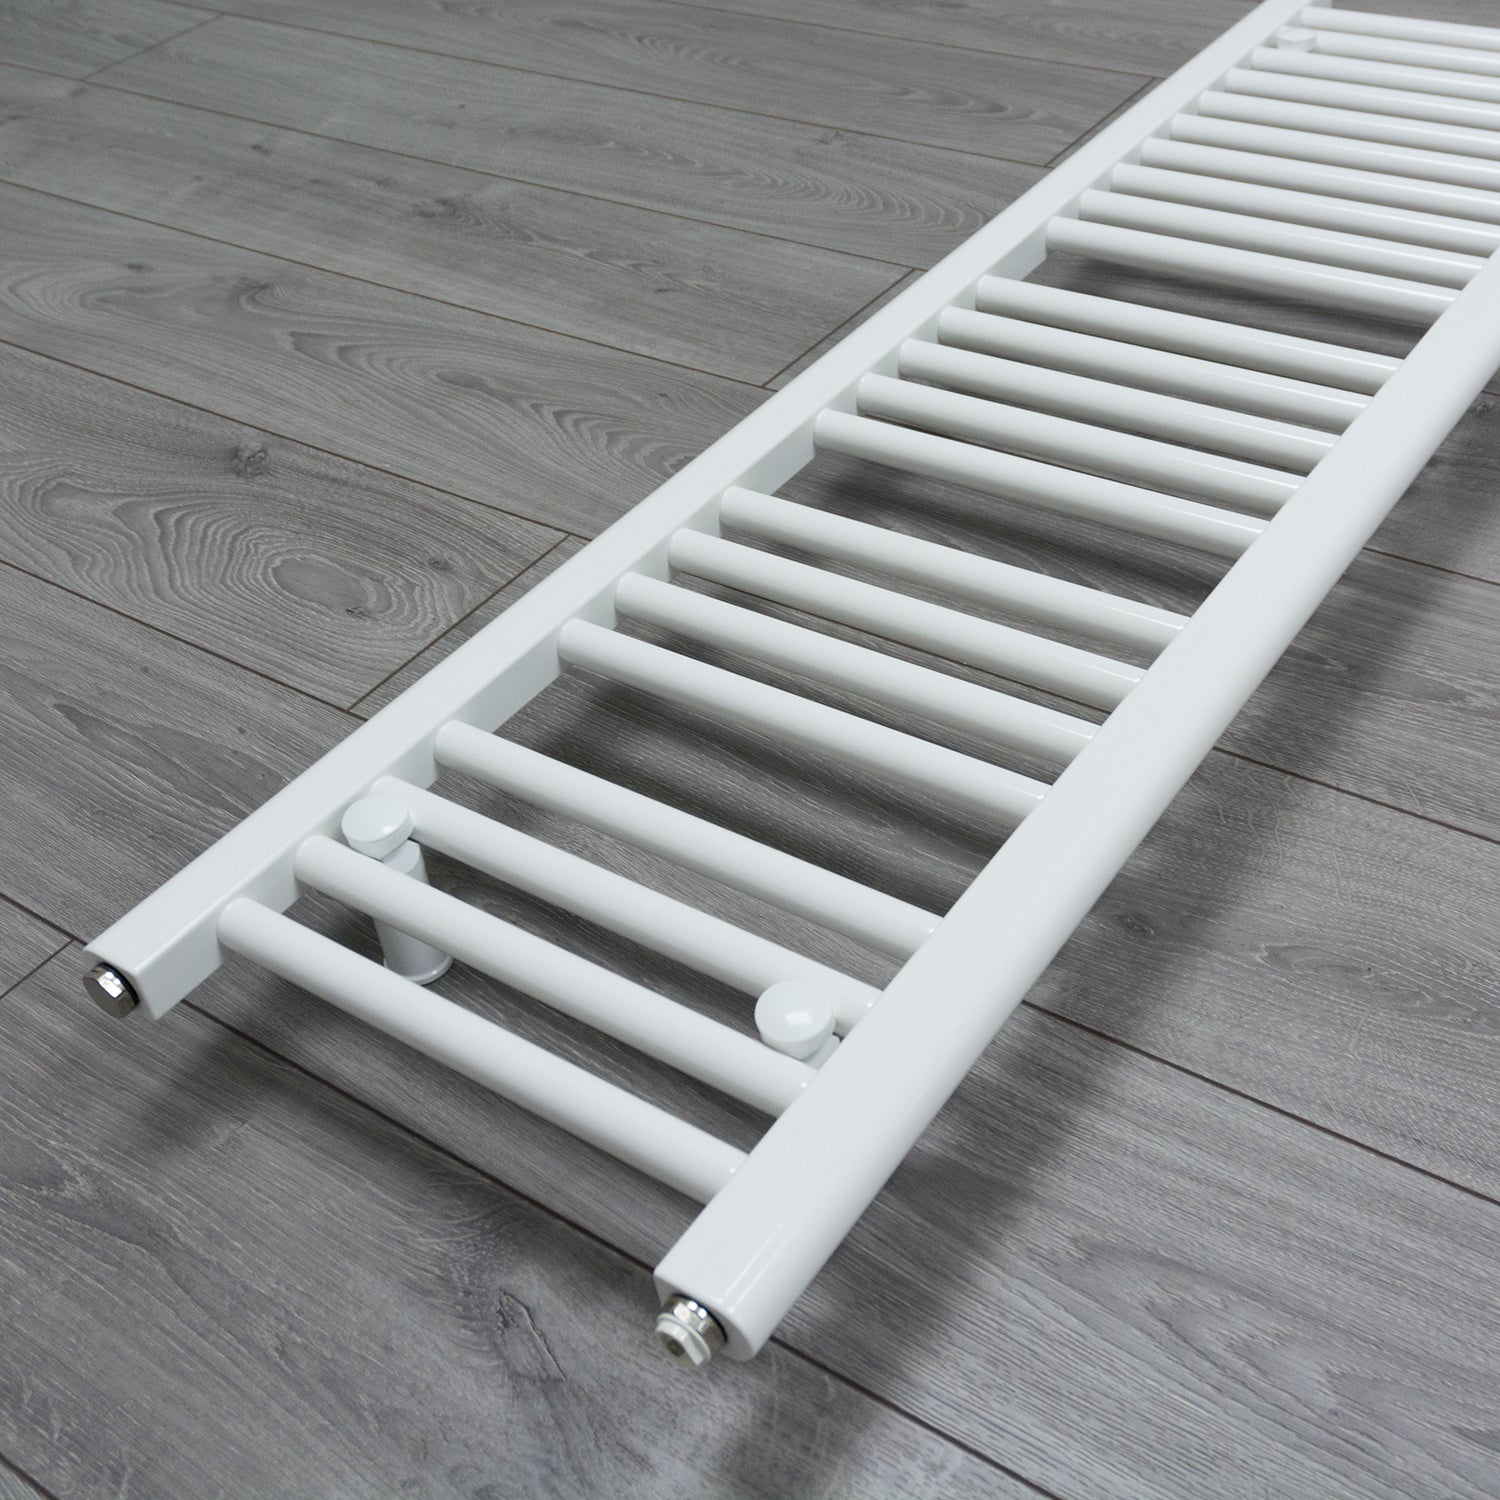 350mm x 800mm White Heated Towel Rail Radiator Close Up Image